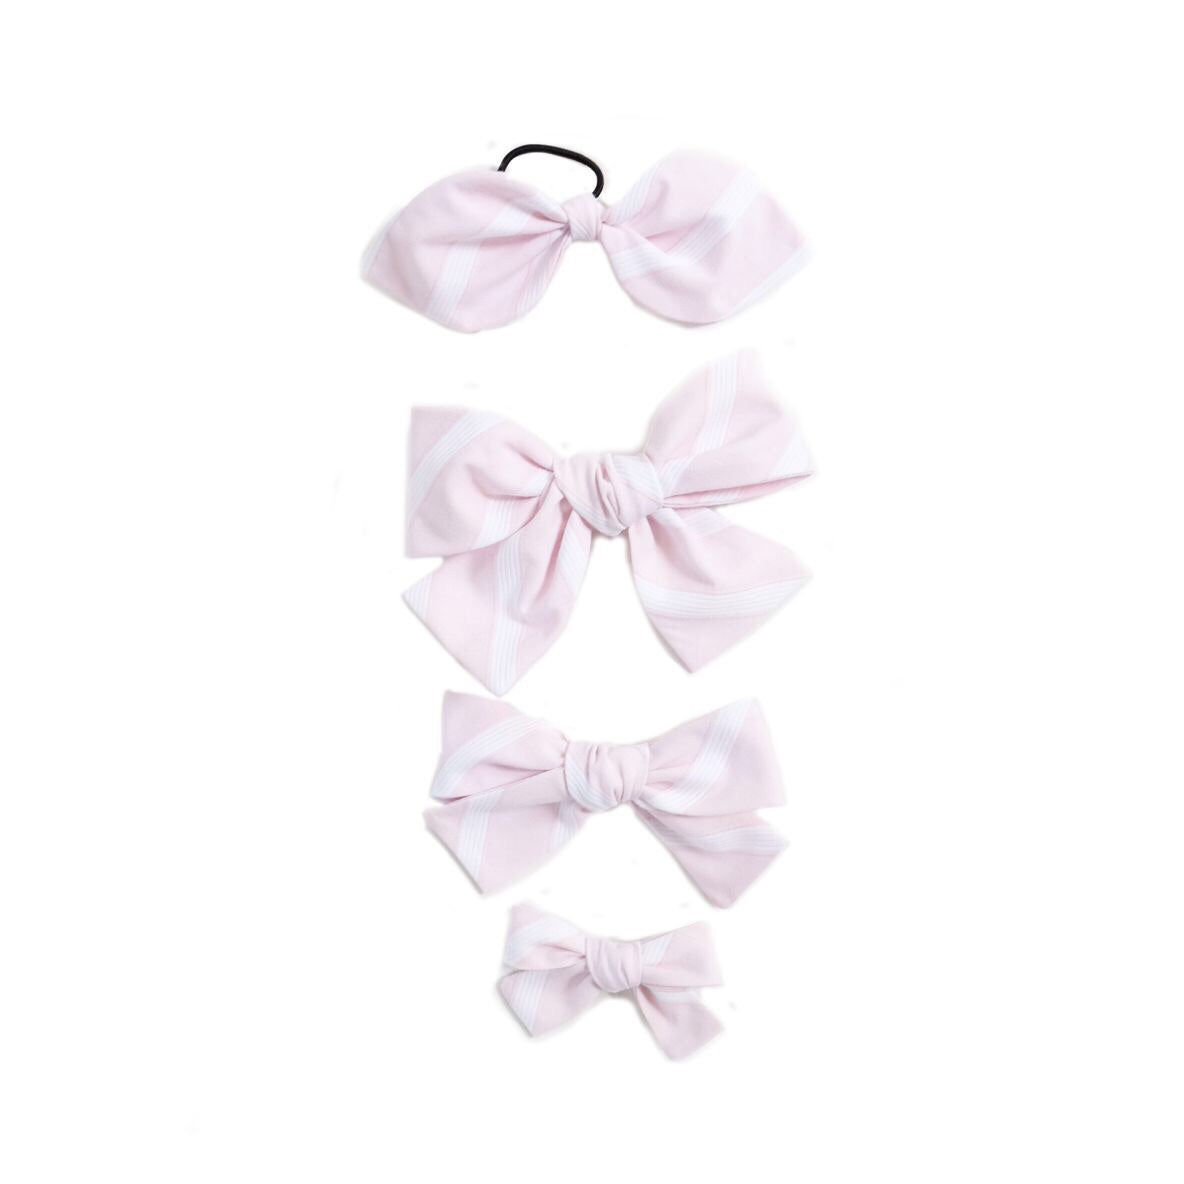 Handtied Hairbows Sweet Pea Stripe- Pink (Sm, Med, Lg, Ponytail)